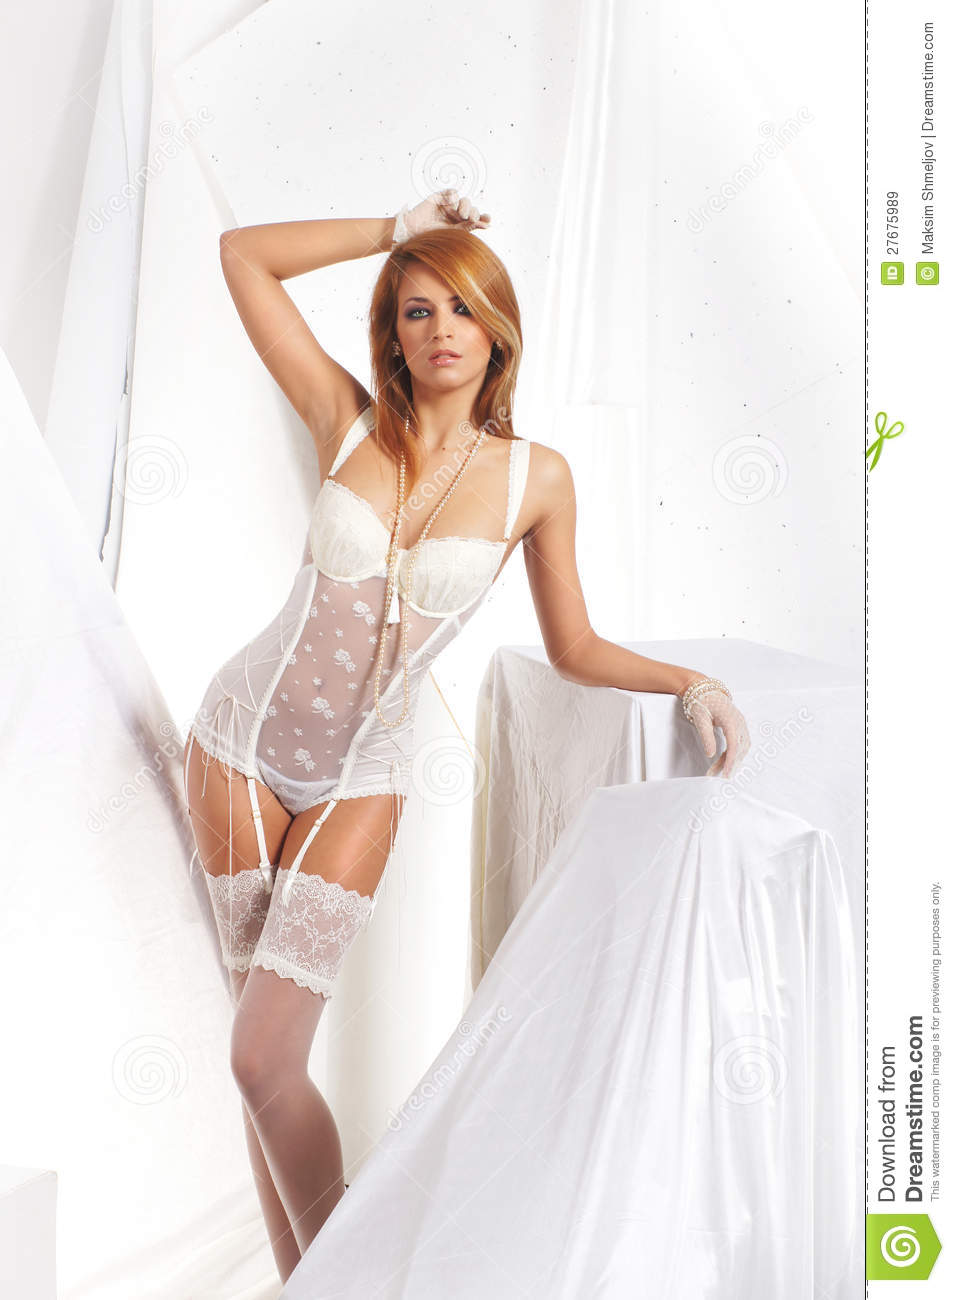 5b0292d9e6f A young and attractive redhead Caucasian woman posing in white erotic  lingerie. The image is taken on a white silk background.